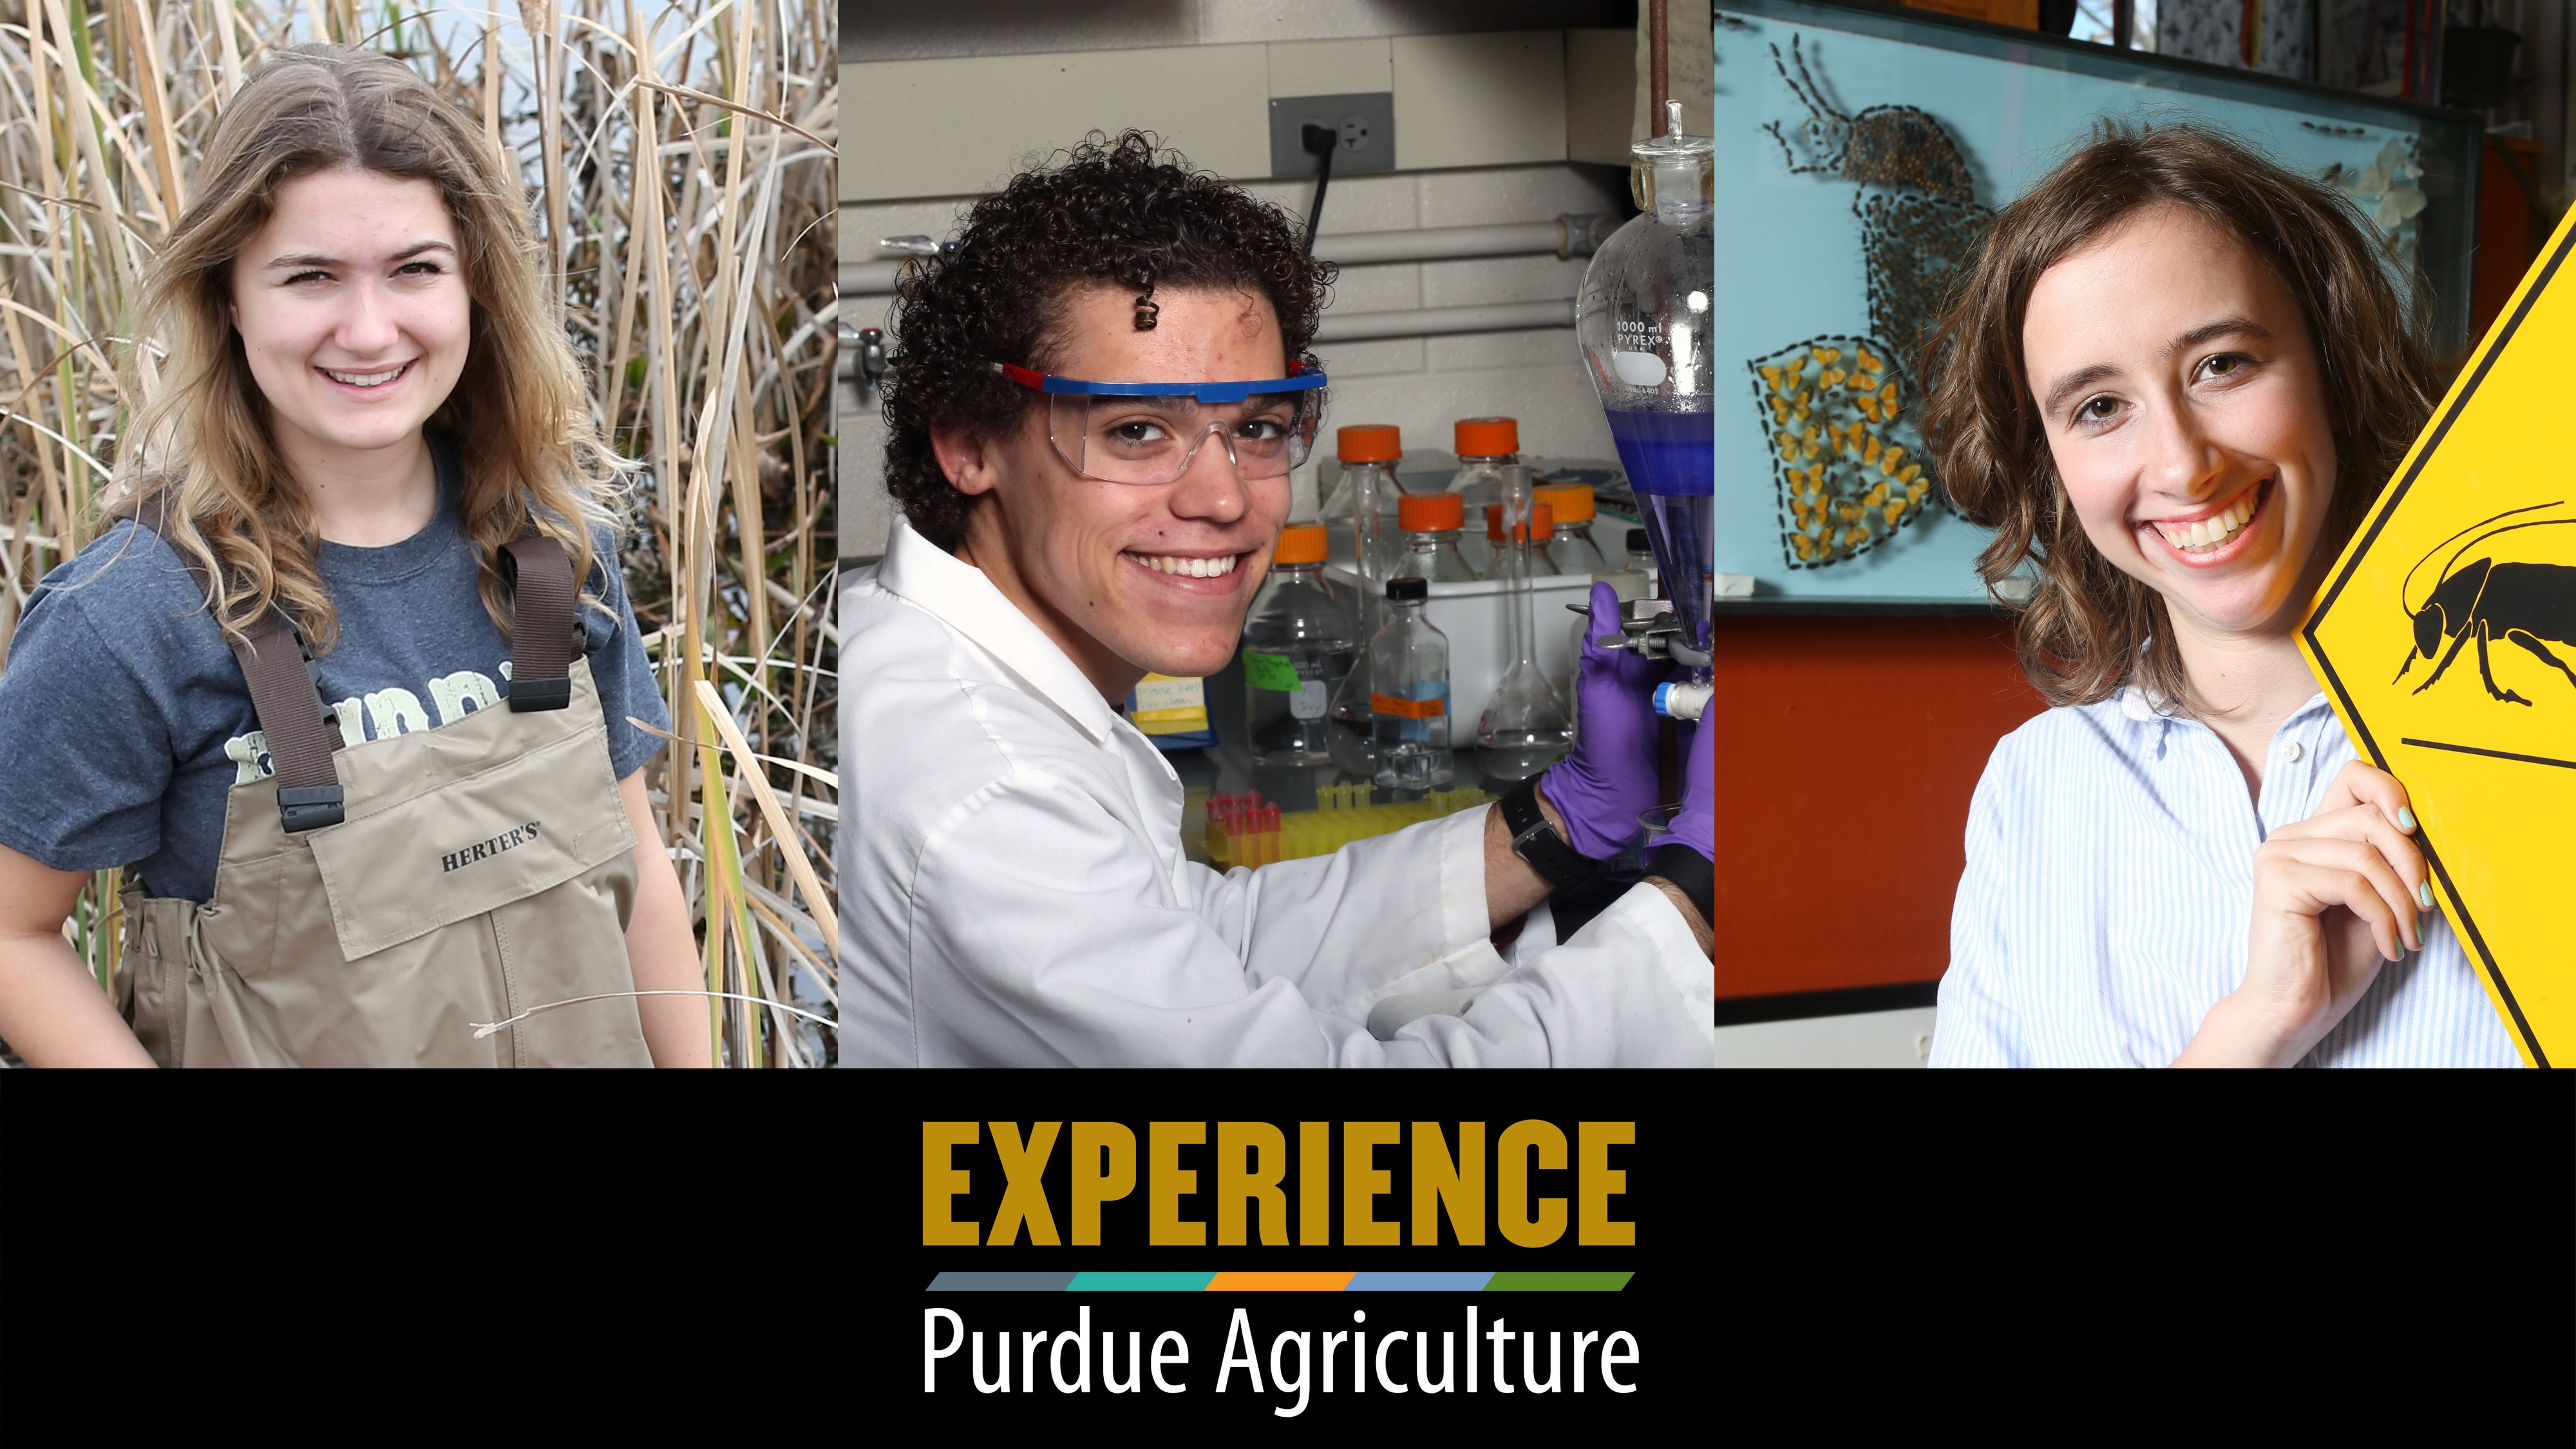 Experience Purdue Agriculture (photo)